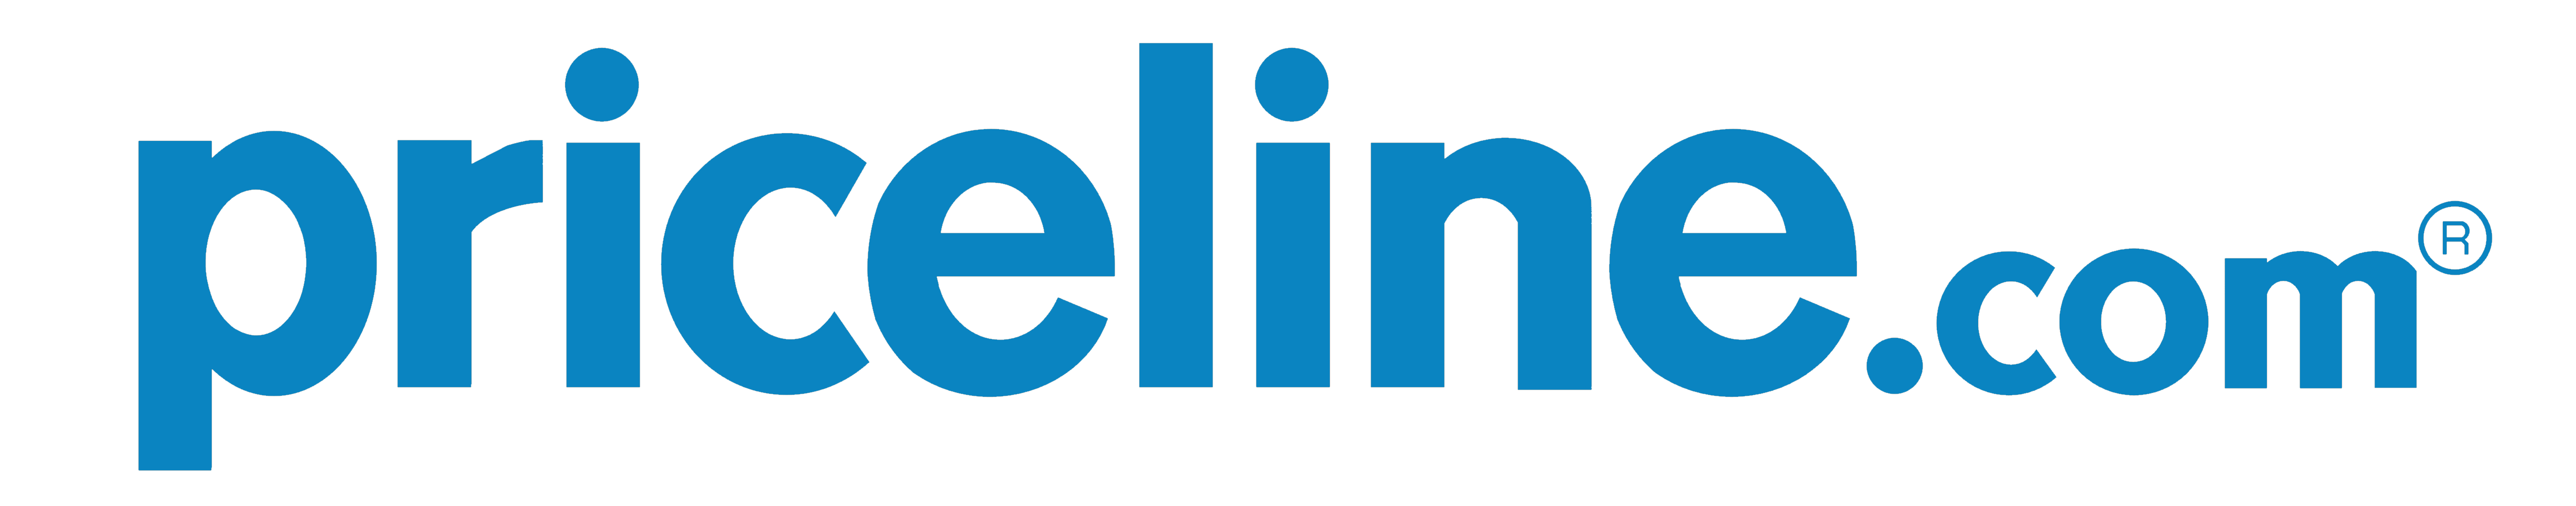 Contact Priceline: Find below customer service details of Priceline travel portal, including phone and address. You can reach the below contact for new hotel or flight booking, cancellation, refund, discounts, car rental, cruises or other services of Priceline.